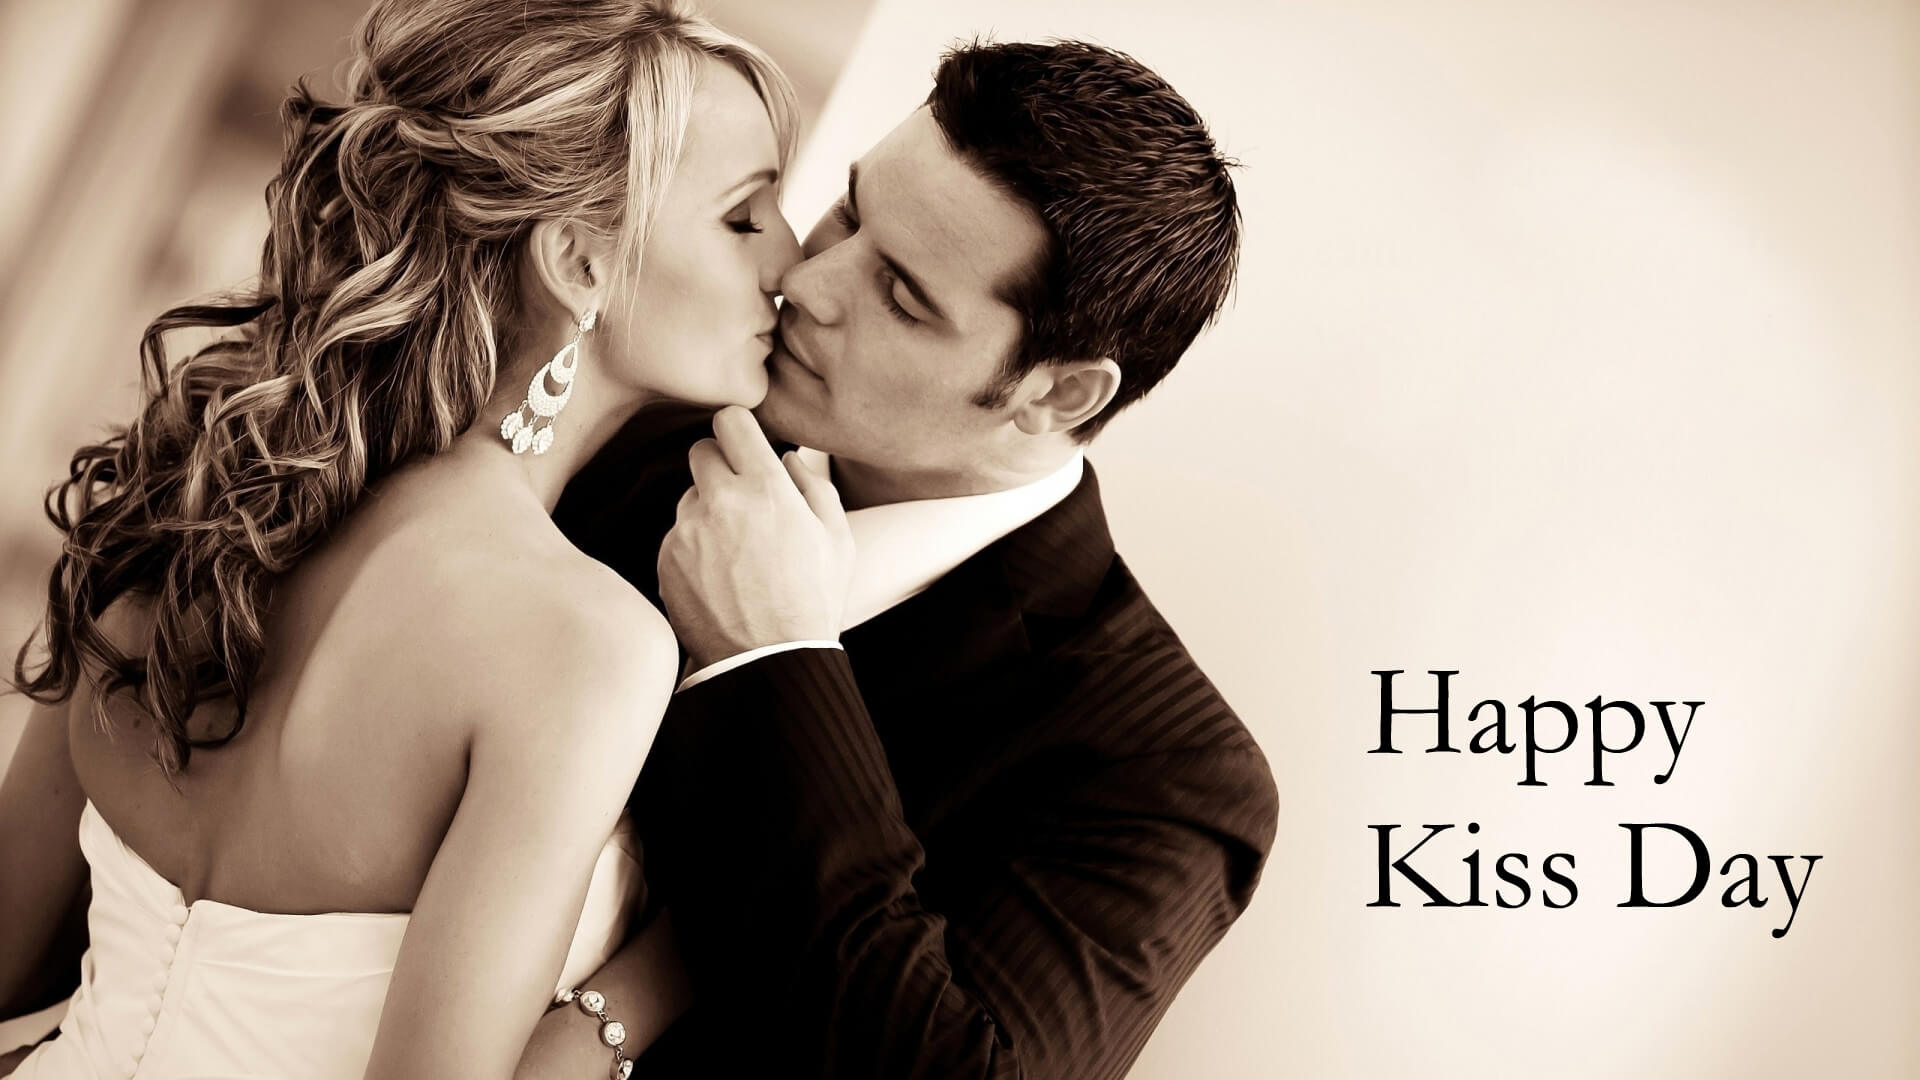 Happy Kiss Day 2017 HD Wallpaper